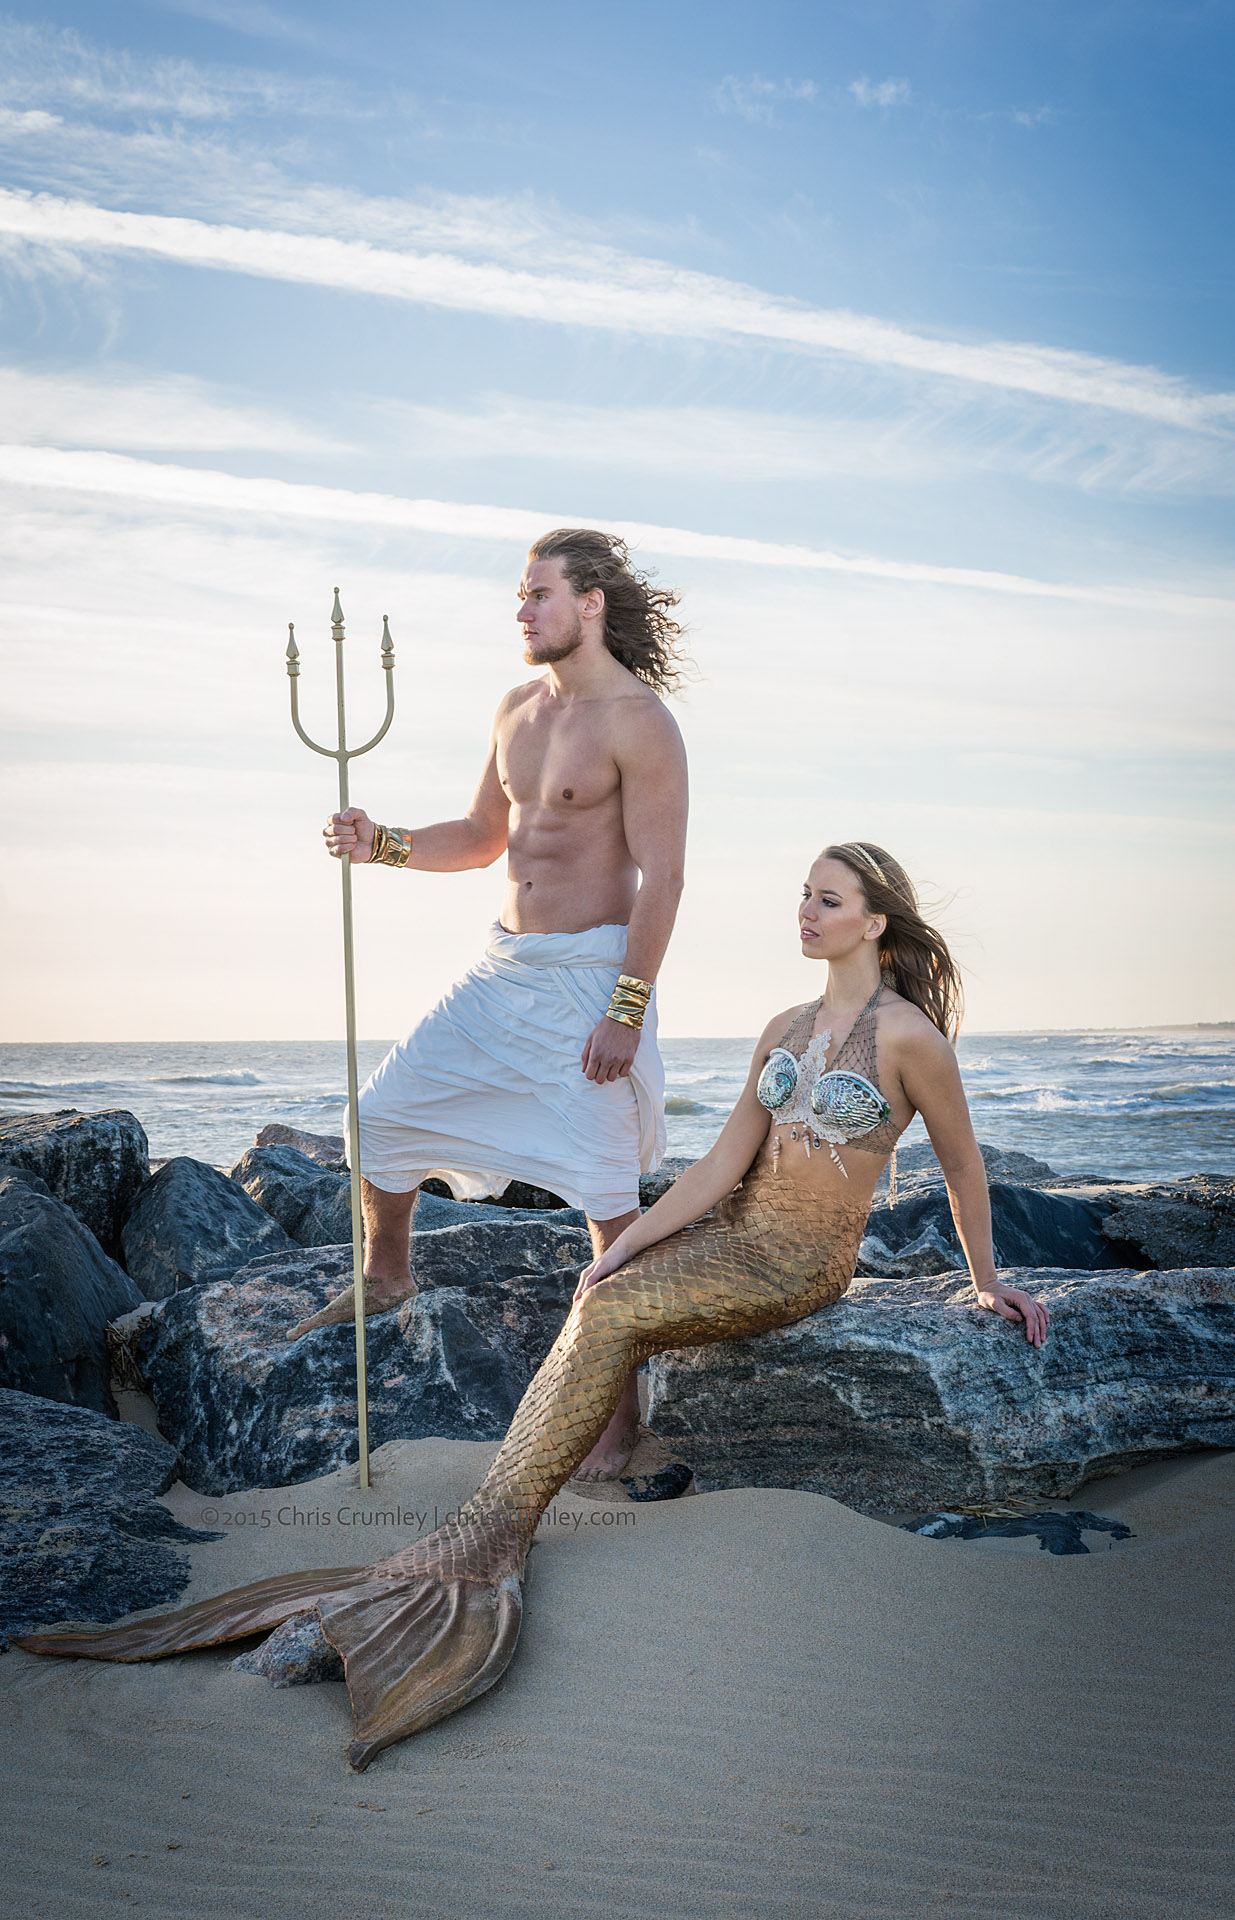 King Neptune & Mermaid